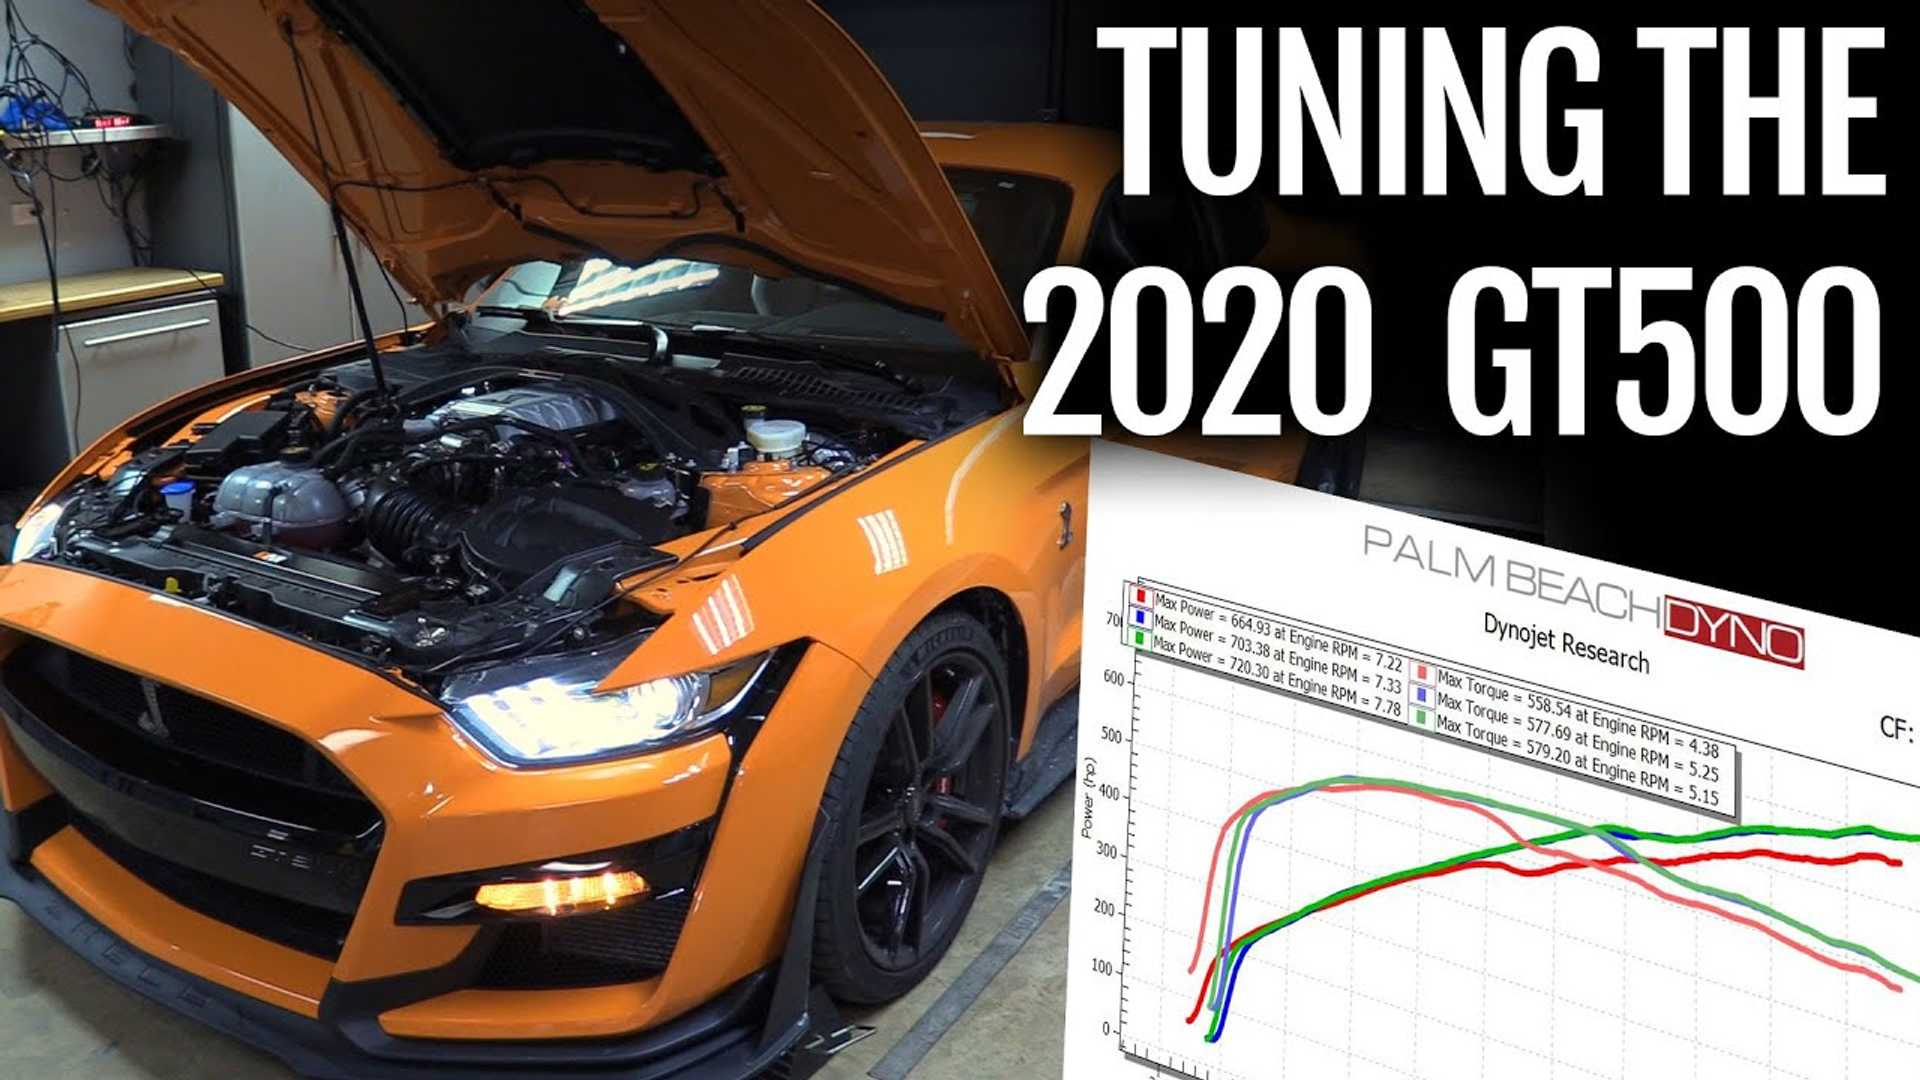 2020 Mustang Shelby GT500 Already Tuned To 720 Wheel Horsepower